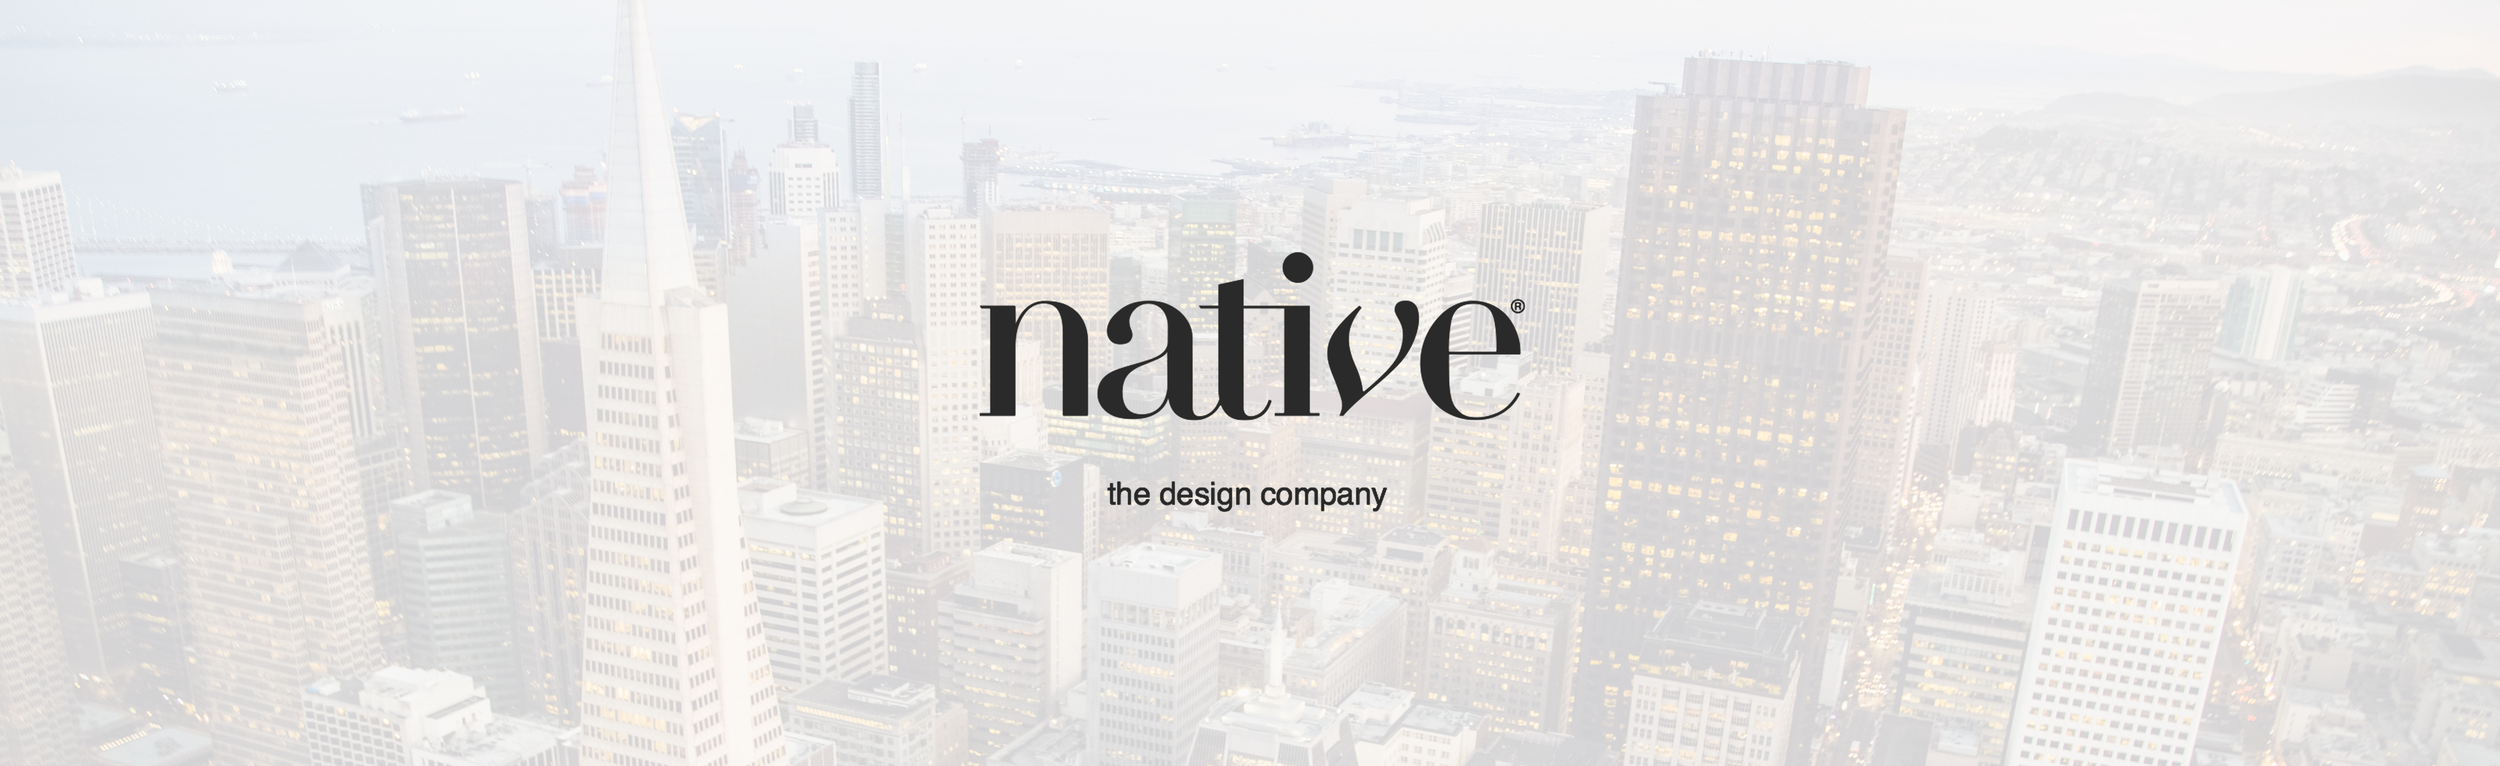 20170028_native-logo-banner.png